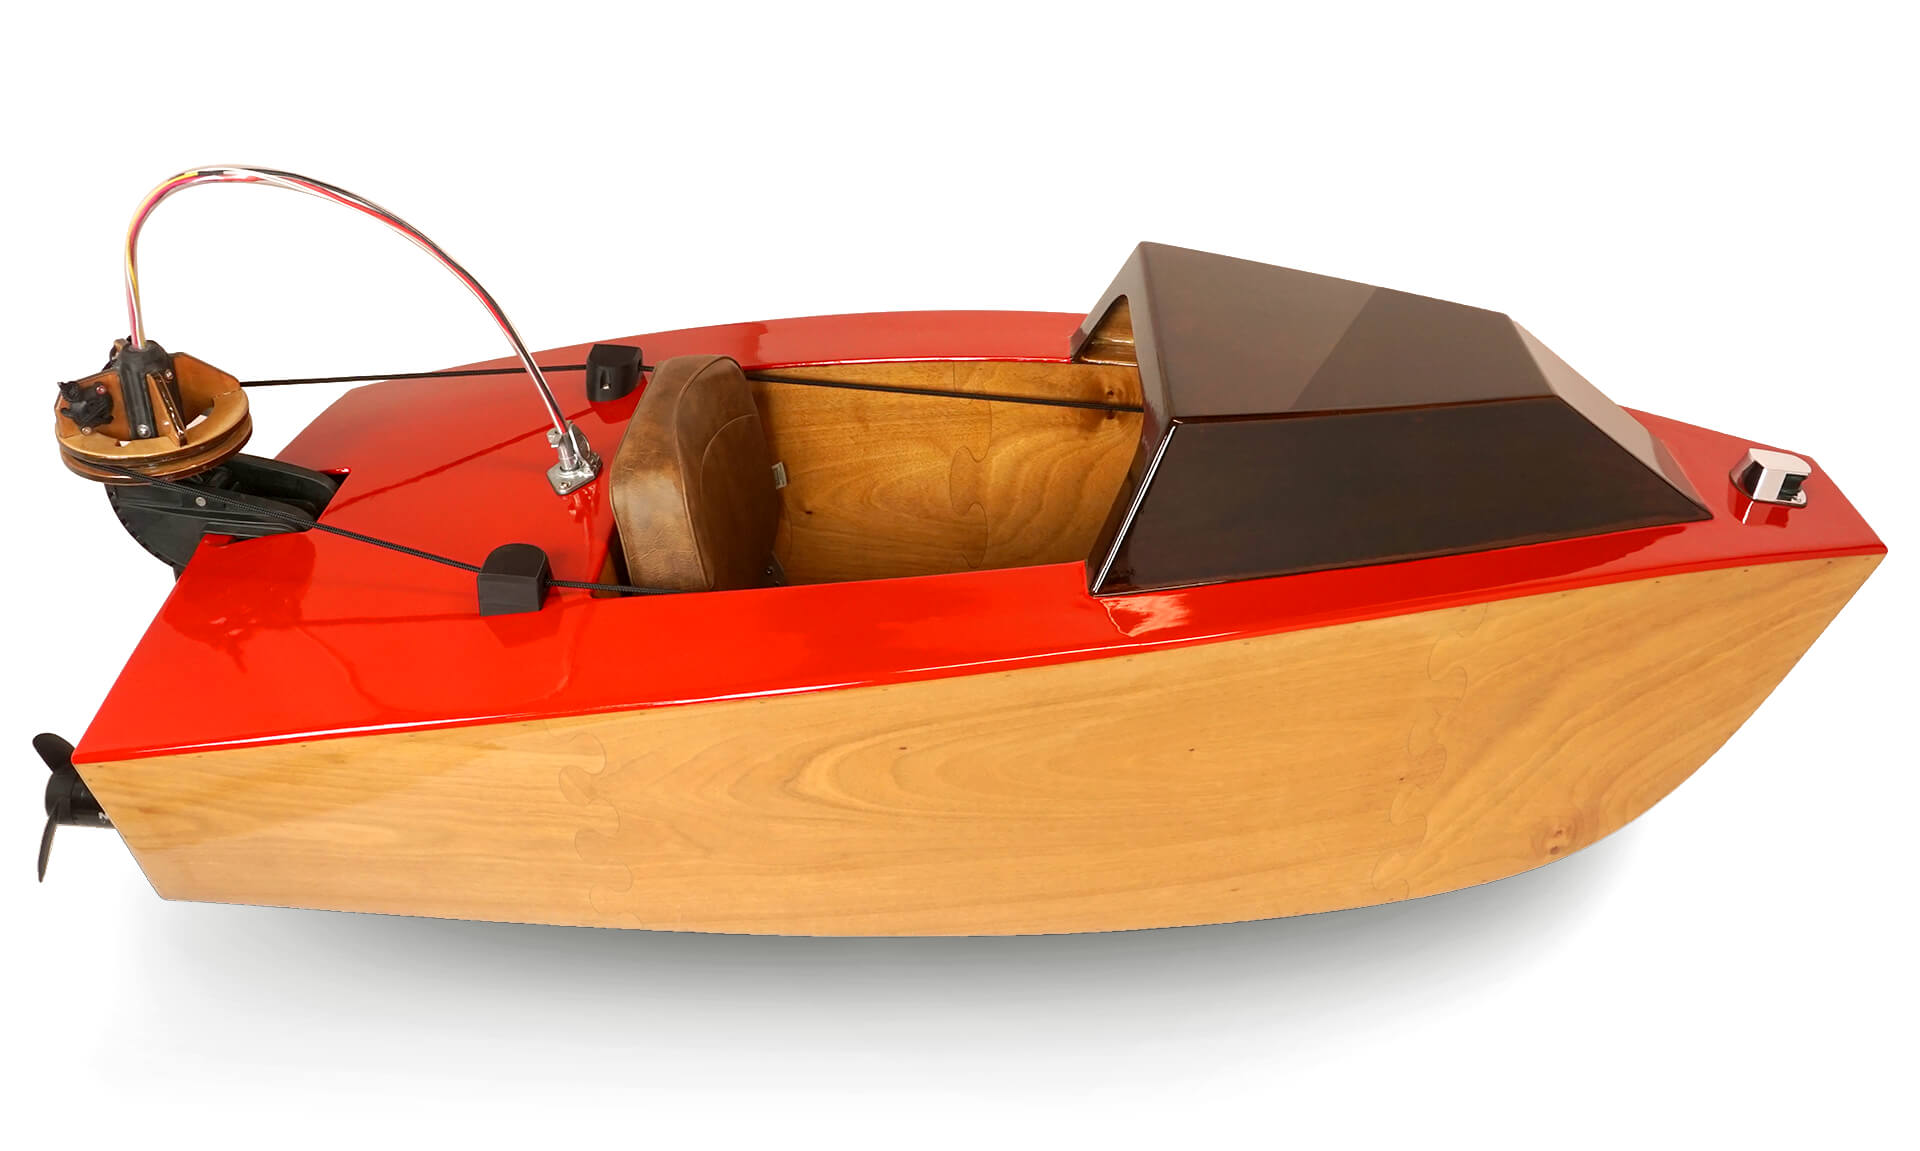 A side / top view of the mini electric boat